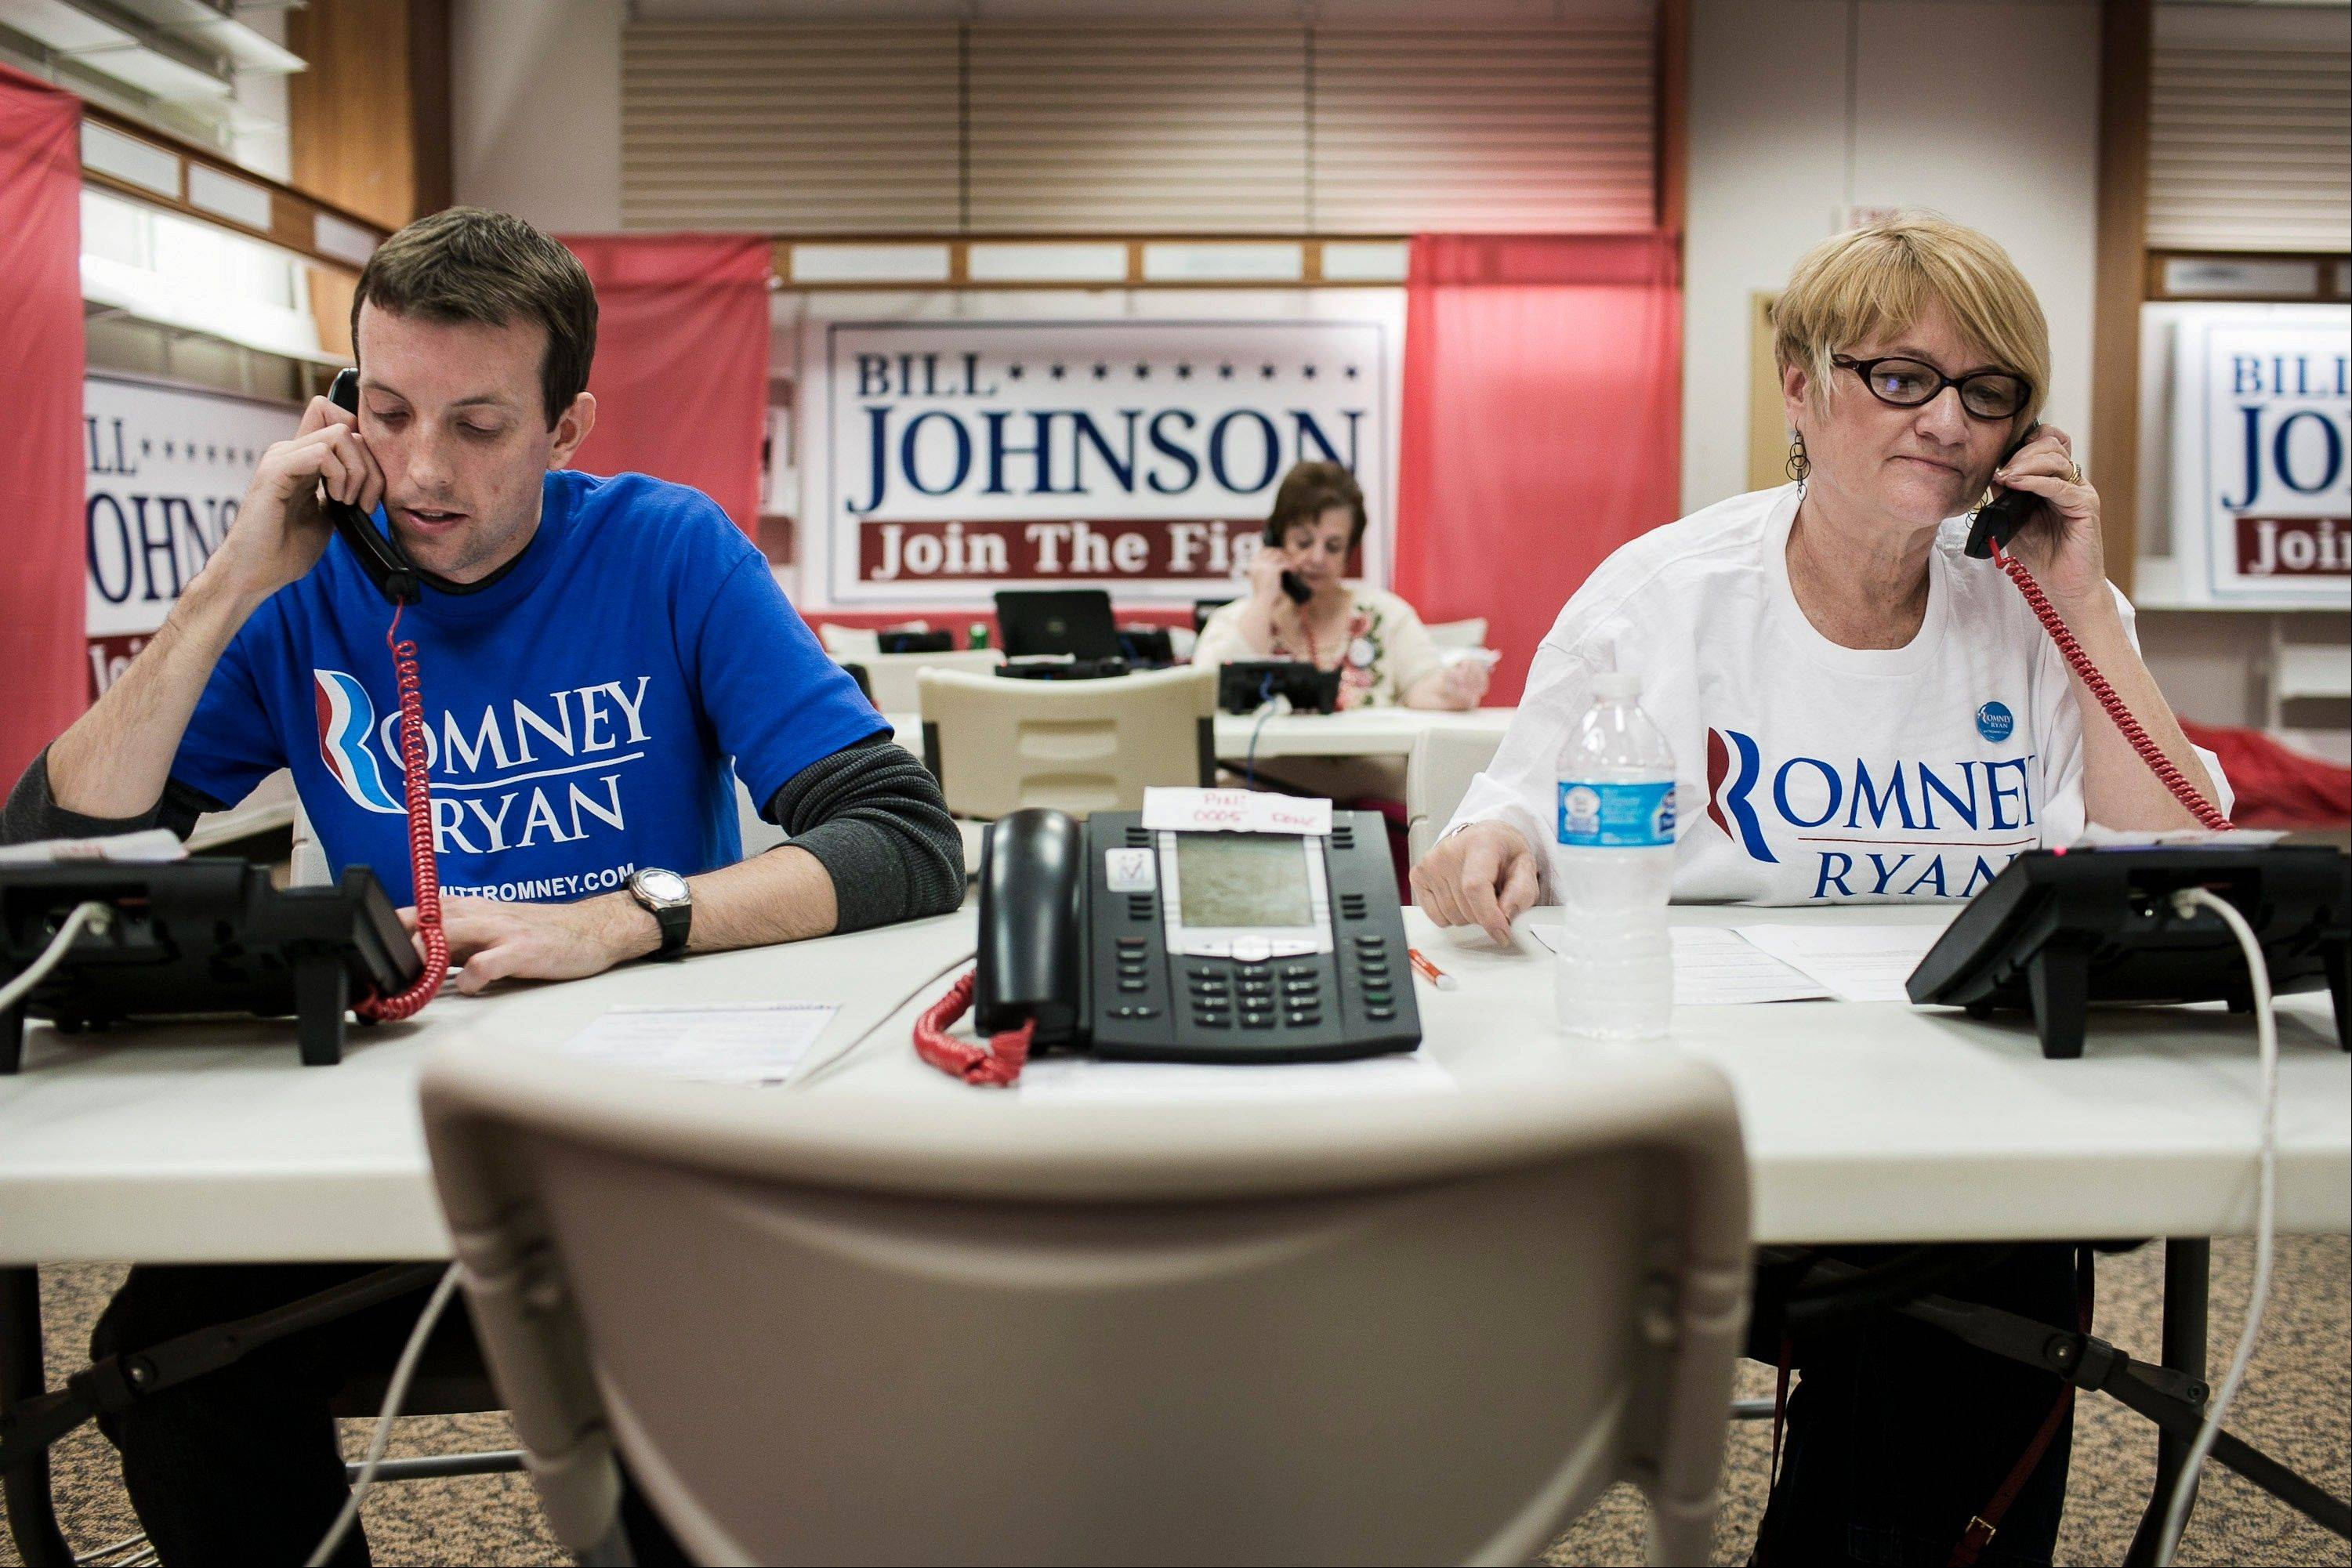 Volunteers Susan Conaway, right, of Toronto, Ohio, and Ryan Call, of Steubenville, Ohio, make phone calls at Republican presidential candidate Mitt Romney's campaign office in Steubenville, Ohio, U.S., on Wednesday, Oct. 24, 2012.